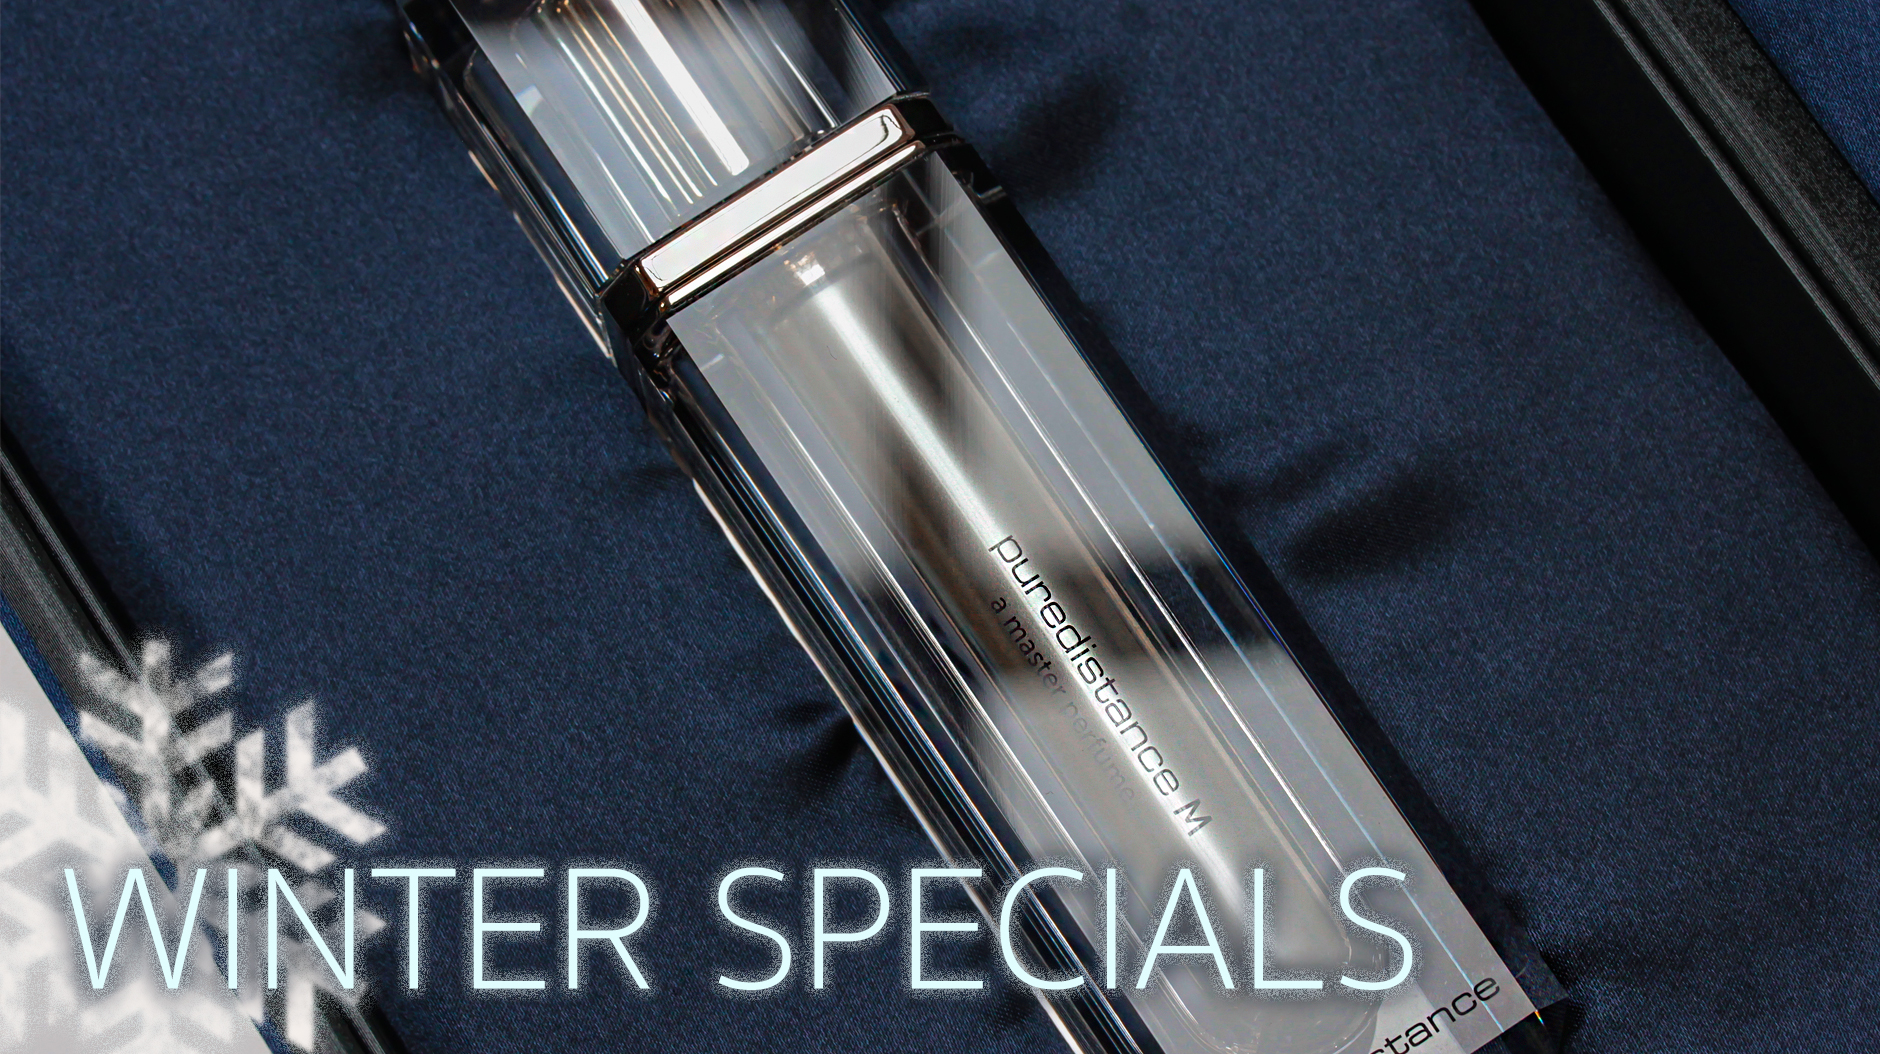 Puredistance Winter Specials